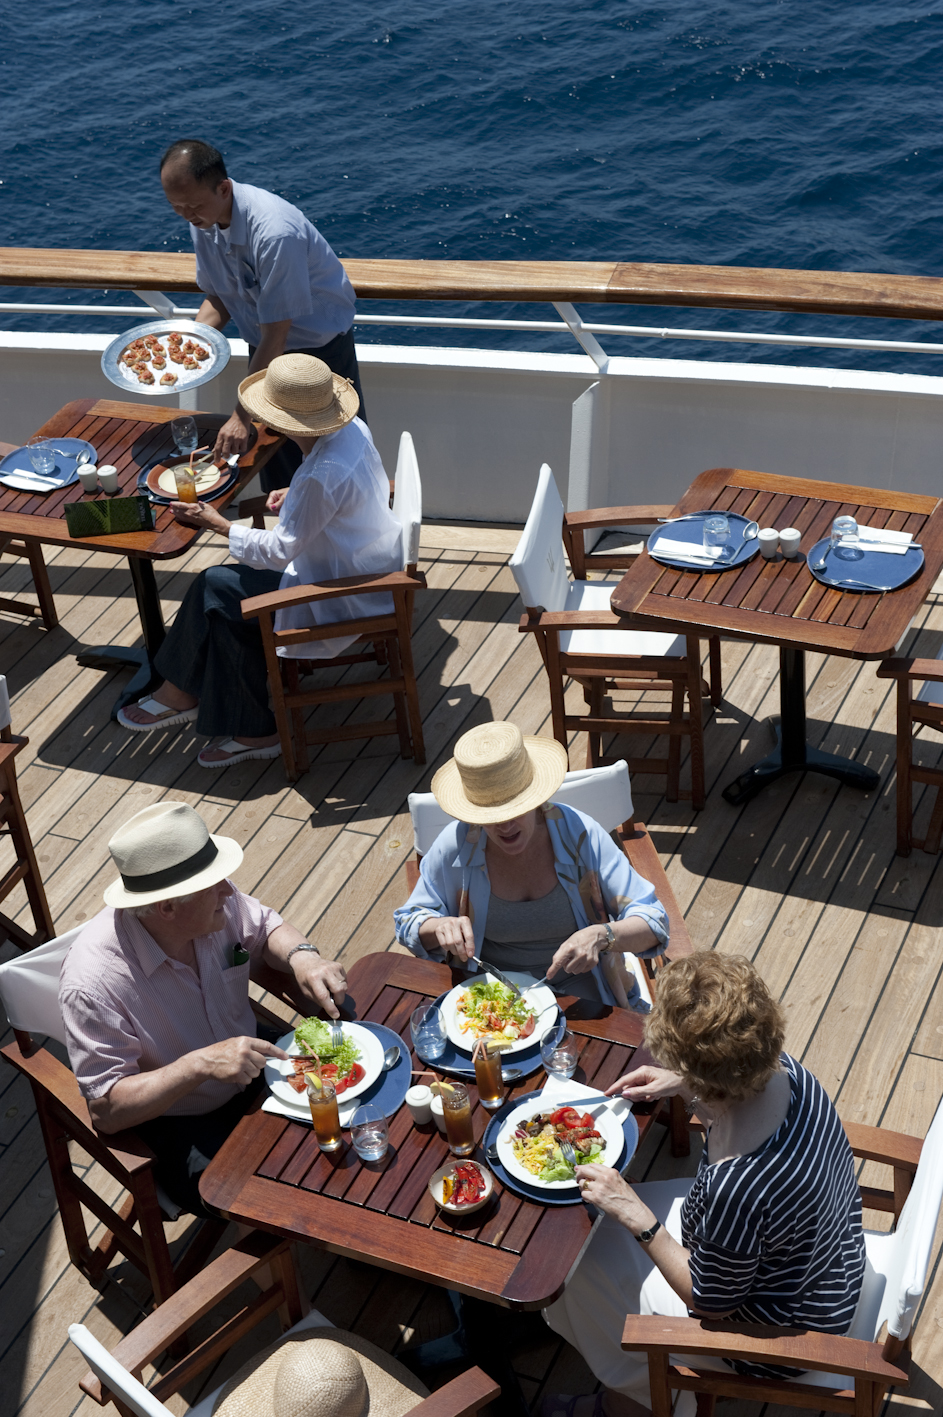 Voyages to Antiquity Aegean Odyssey Outside dining.jpg